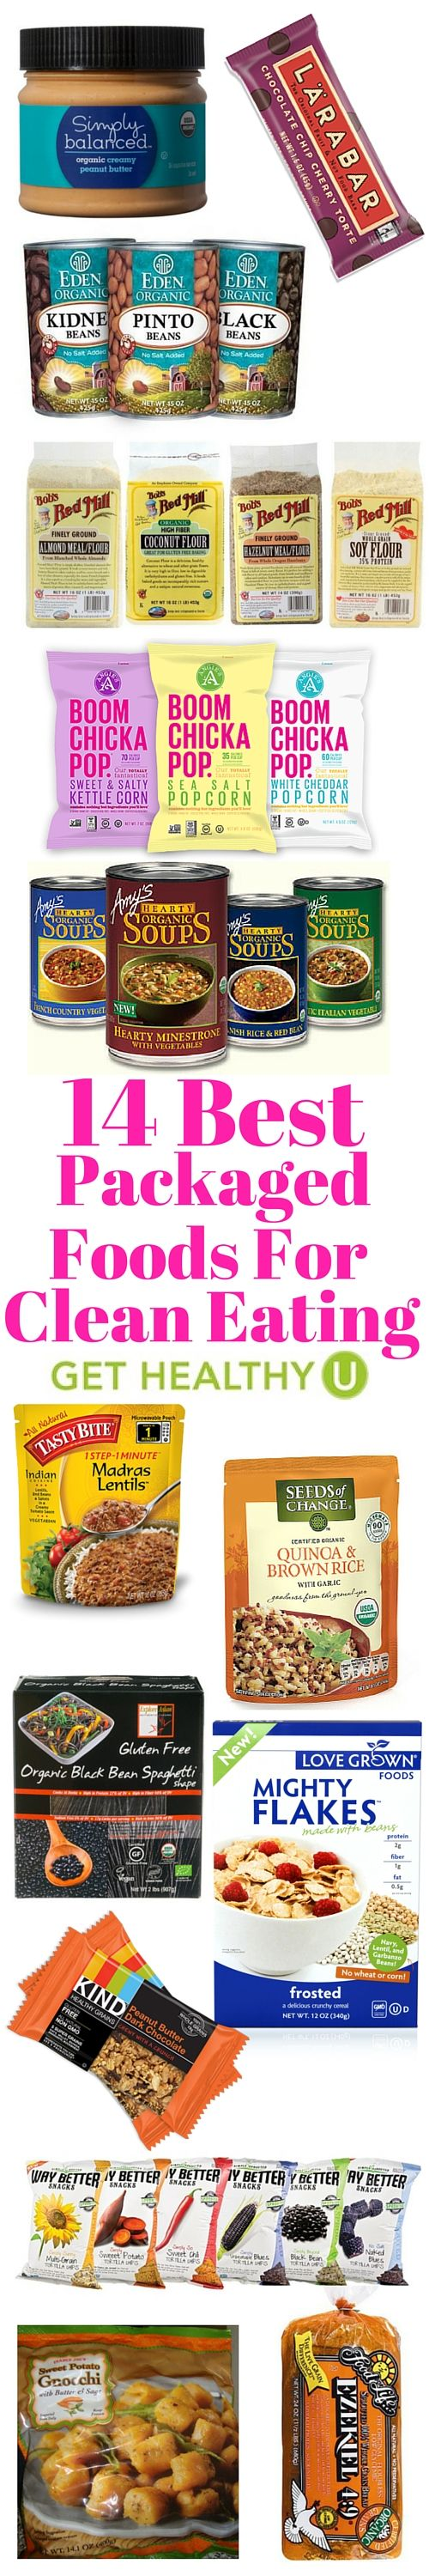 For good health what to eat - 15 Packaged Foods You Can Actually Eat Get Healthy U